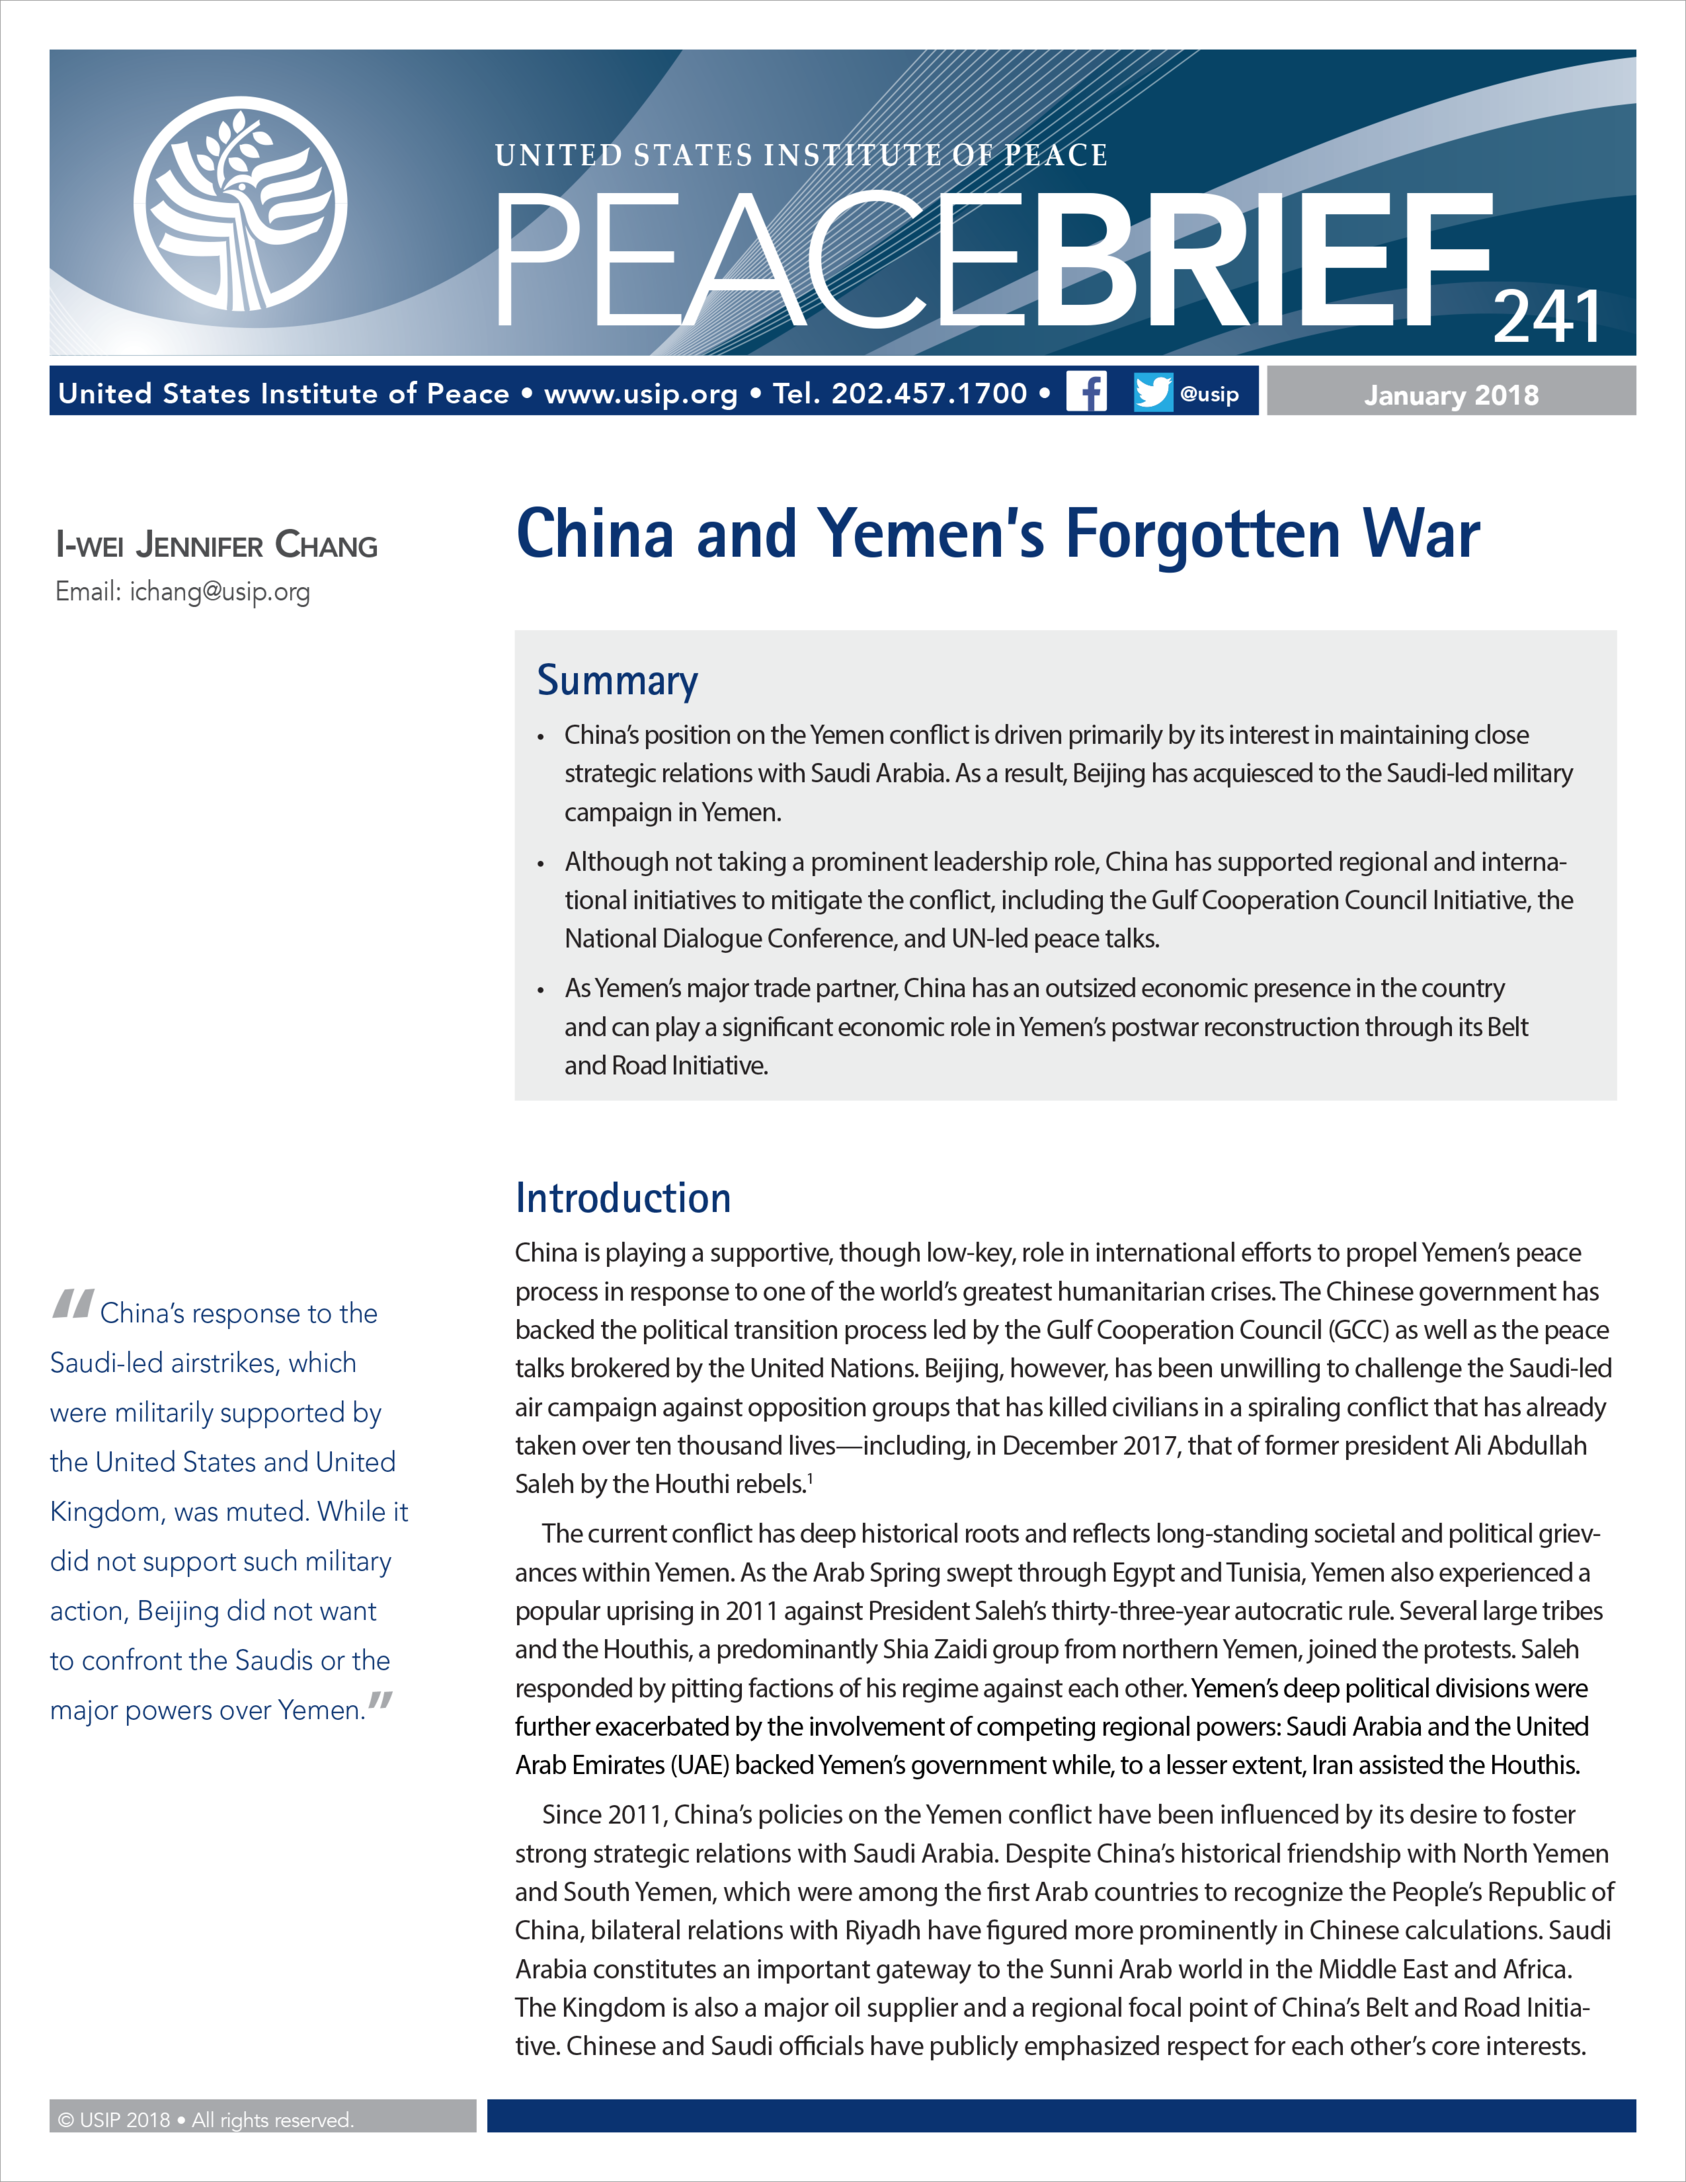 China and Yemen's Forgotten War | United States Institute of